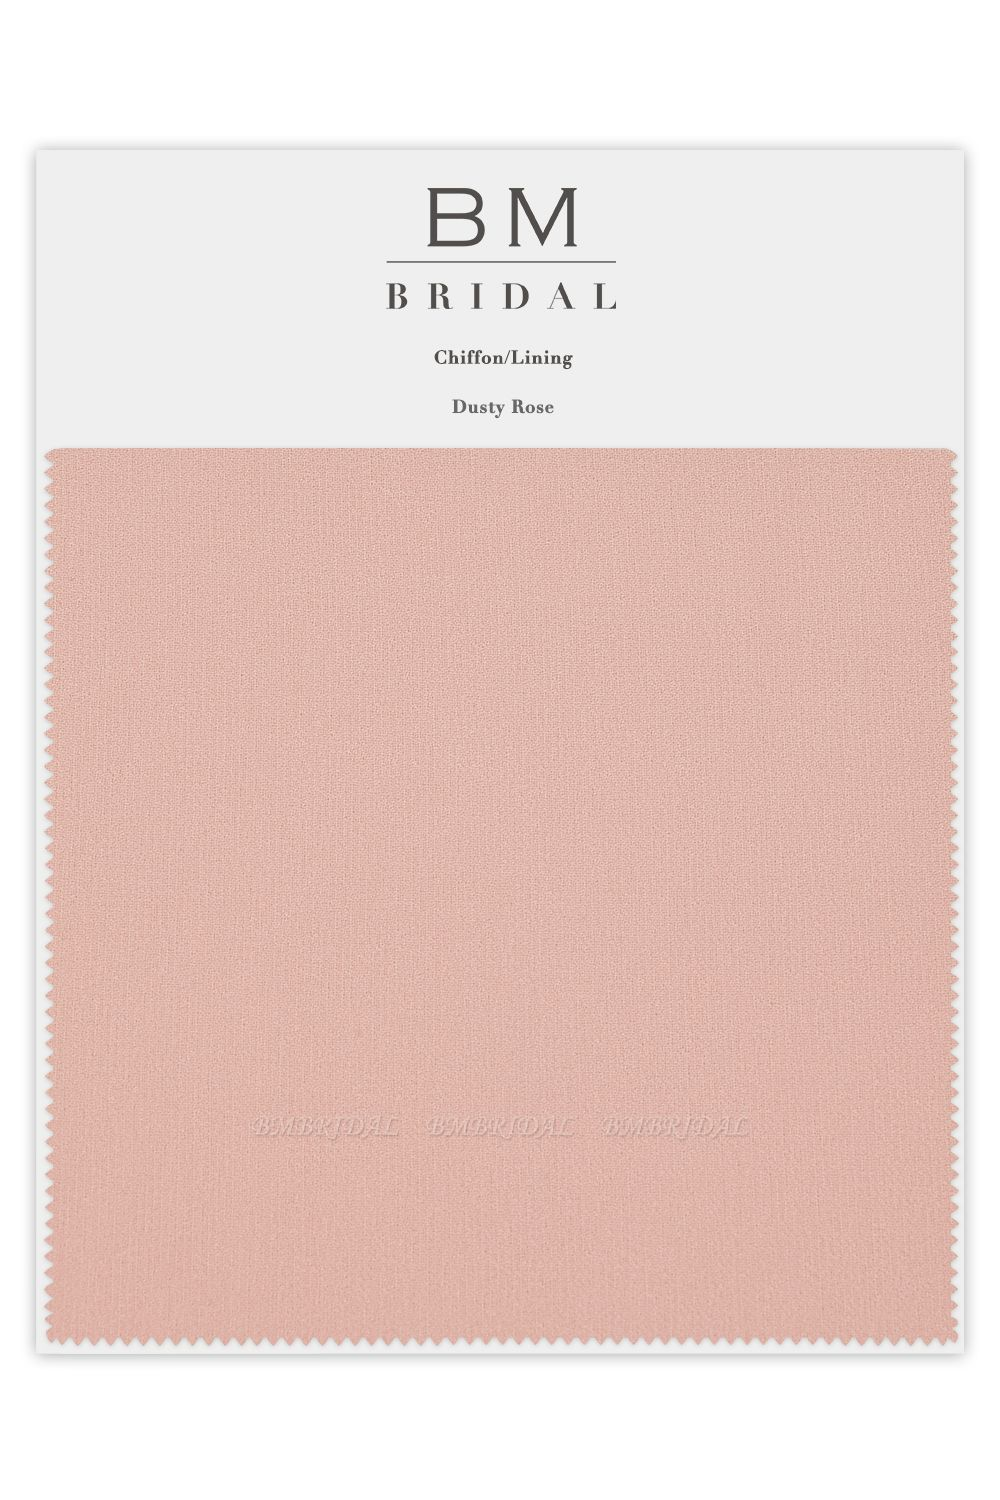 BMbridal Bridesmaid Chiffon Color Swatches